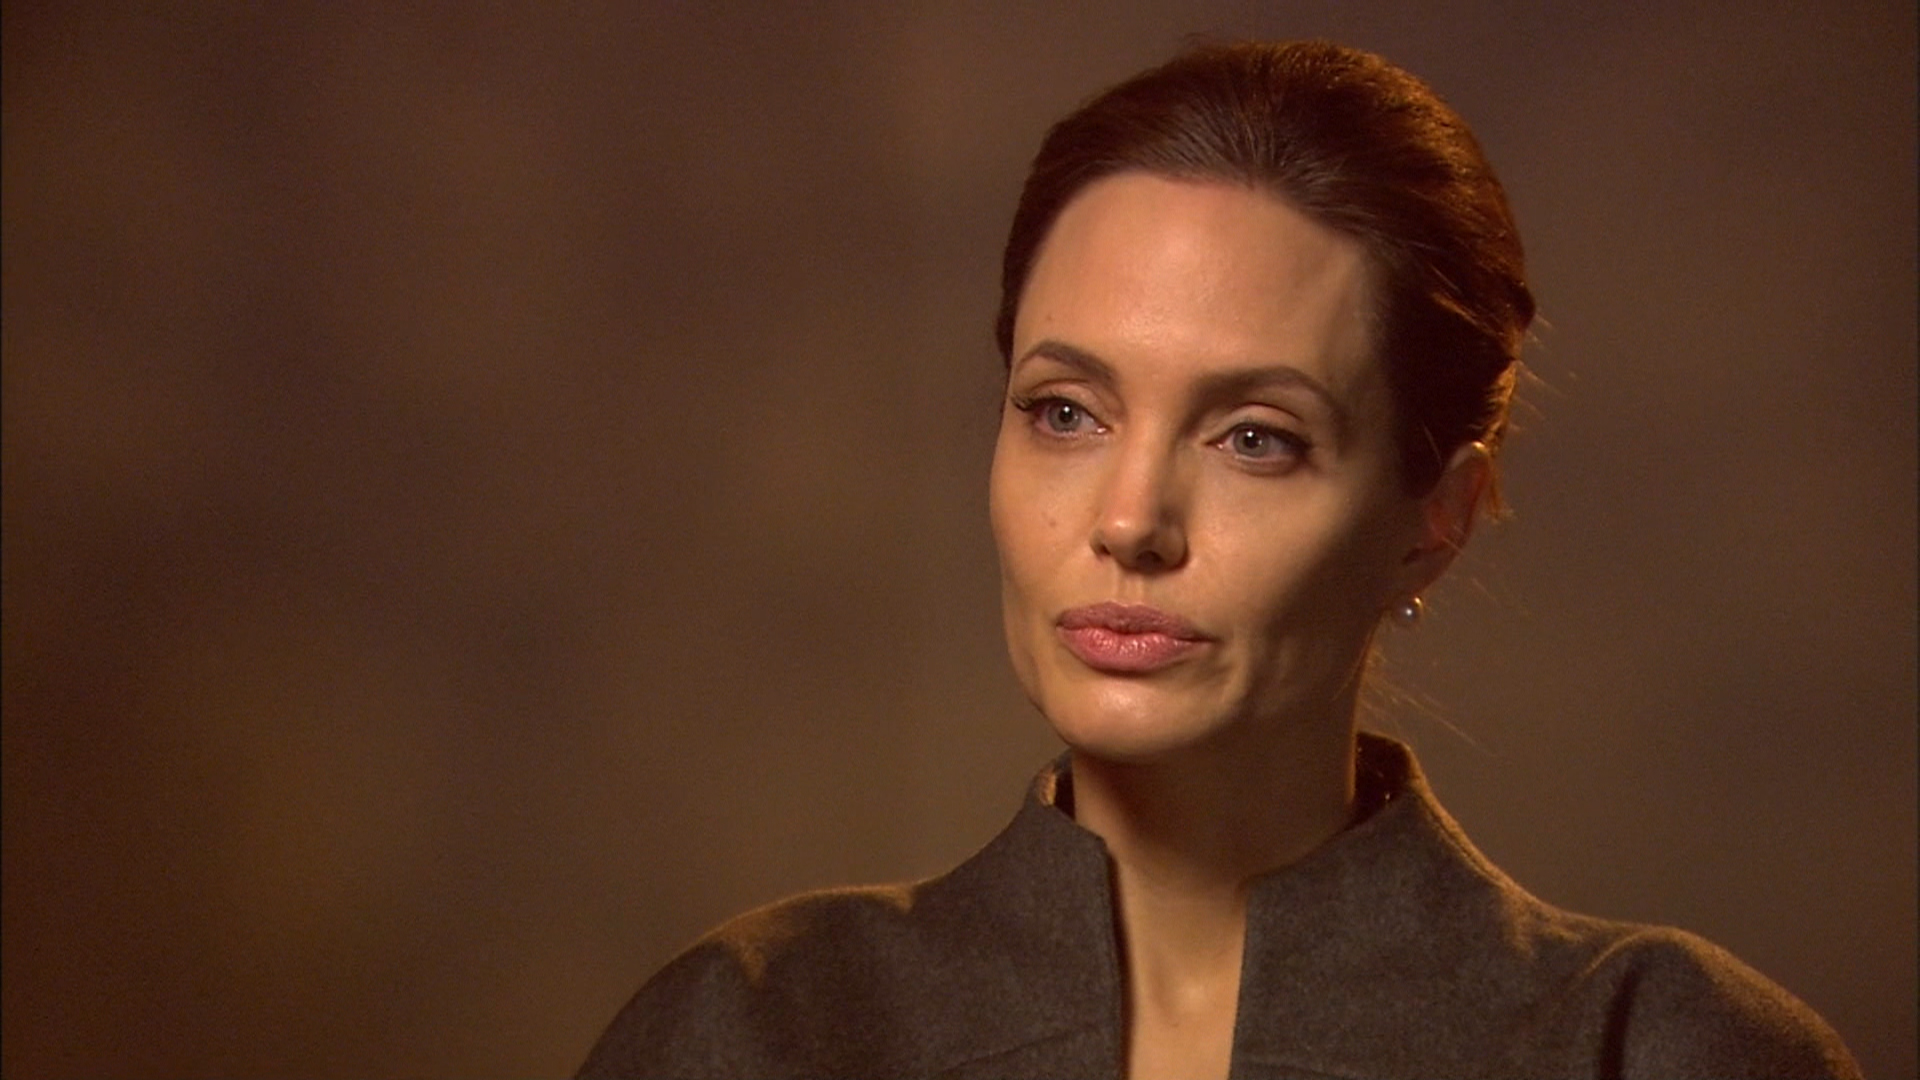 Jolie believes that men need to speak up